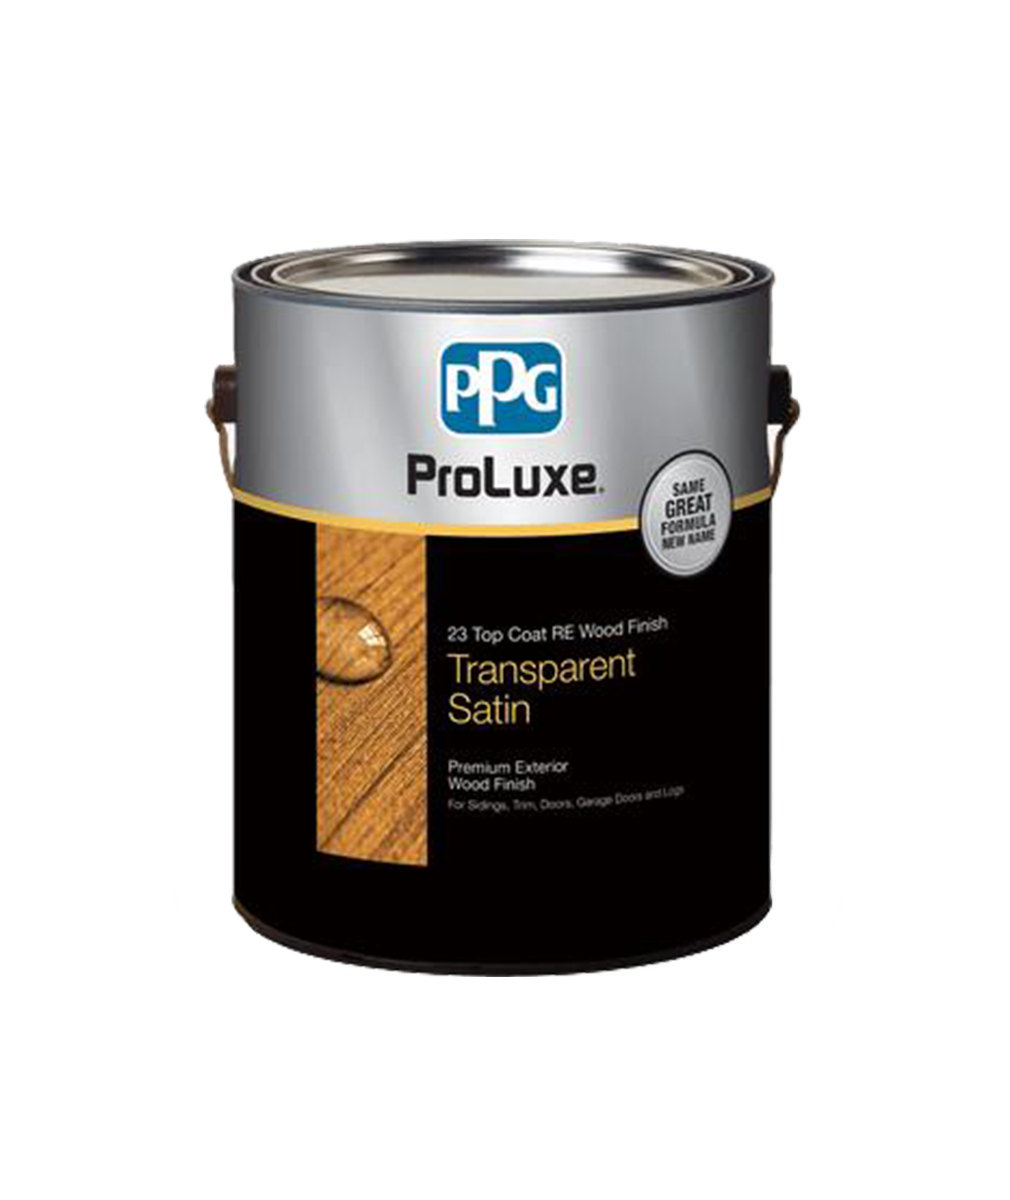 Proluxe Cetol 23 Plus RE Wood Finish Top Coat, available at Clement's Paint in Austin, TX.